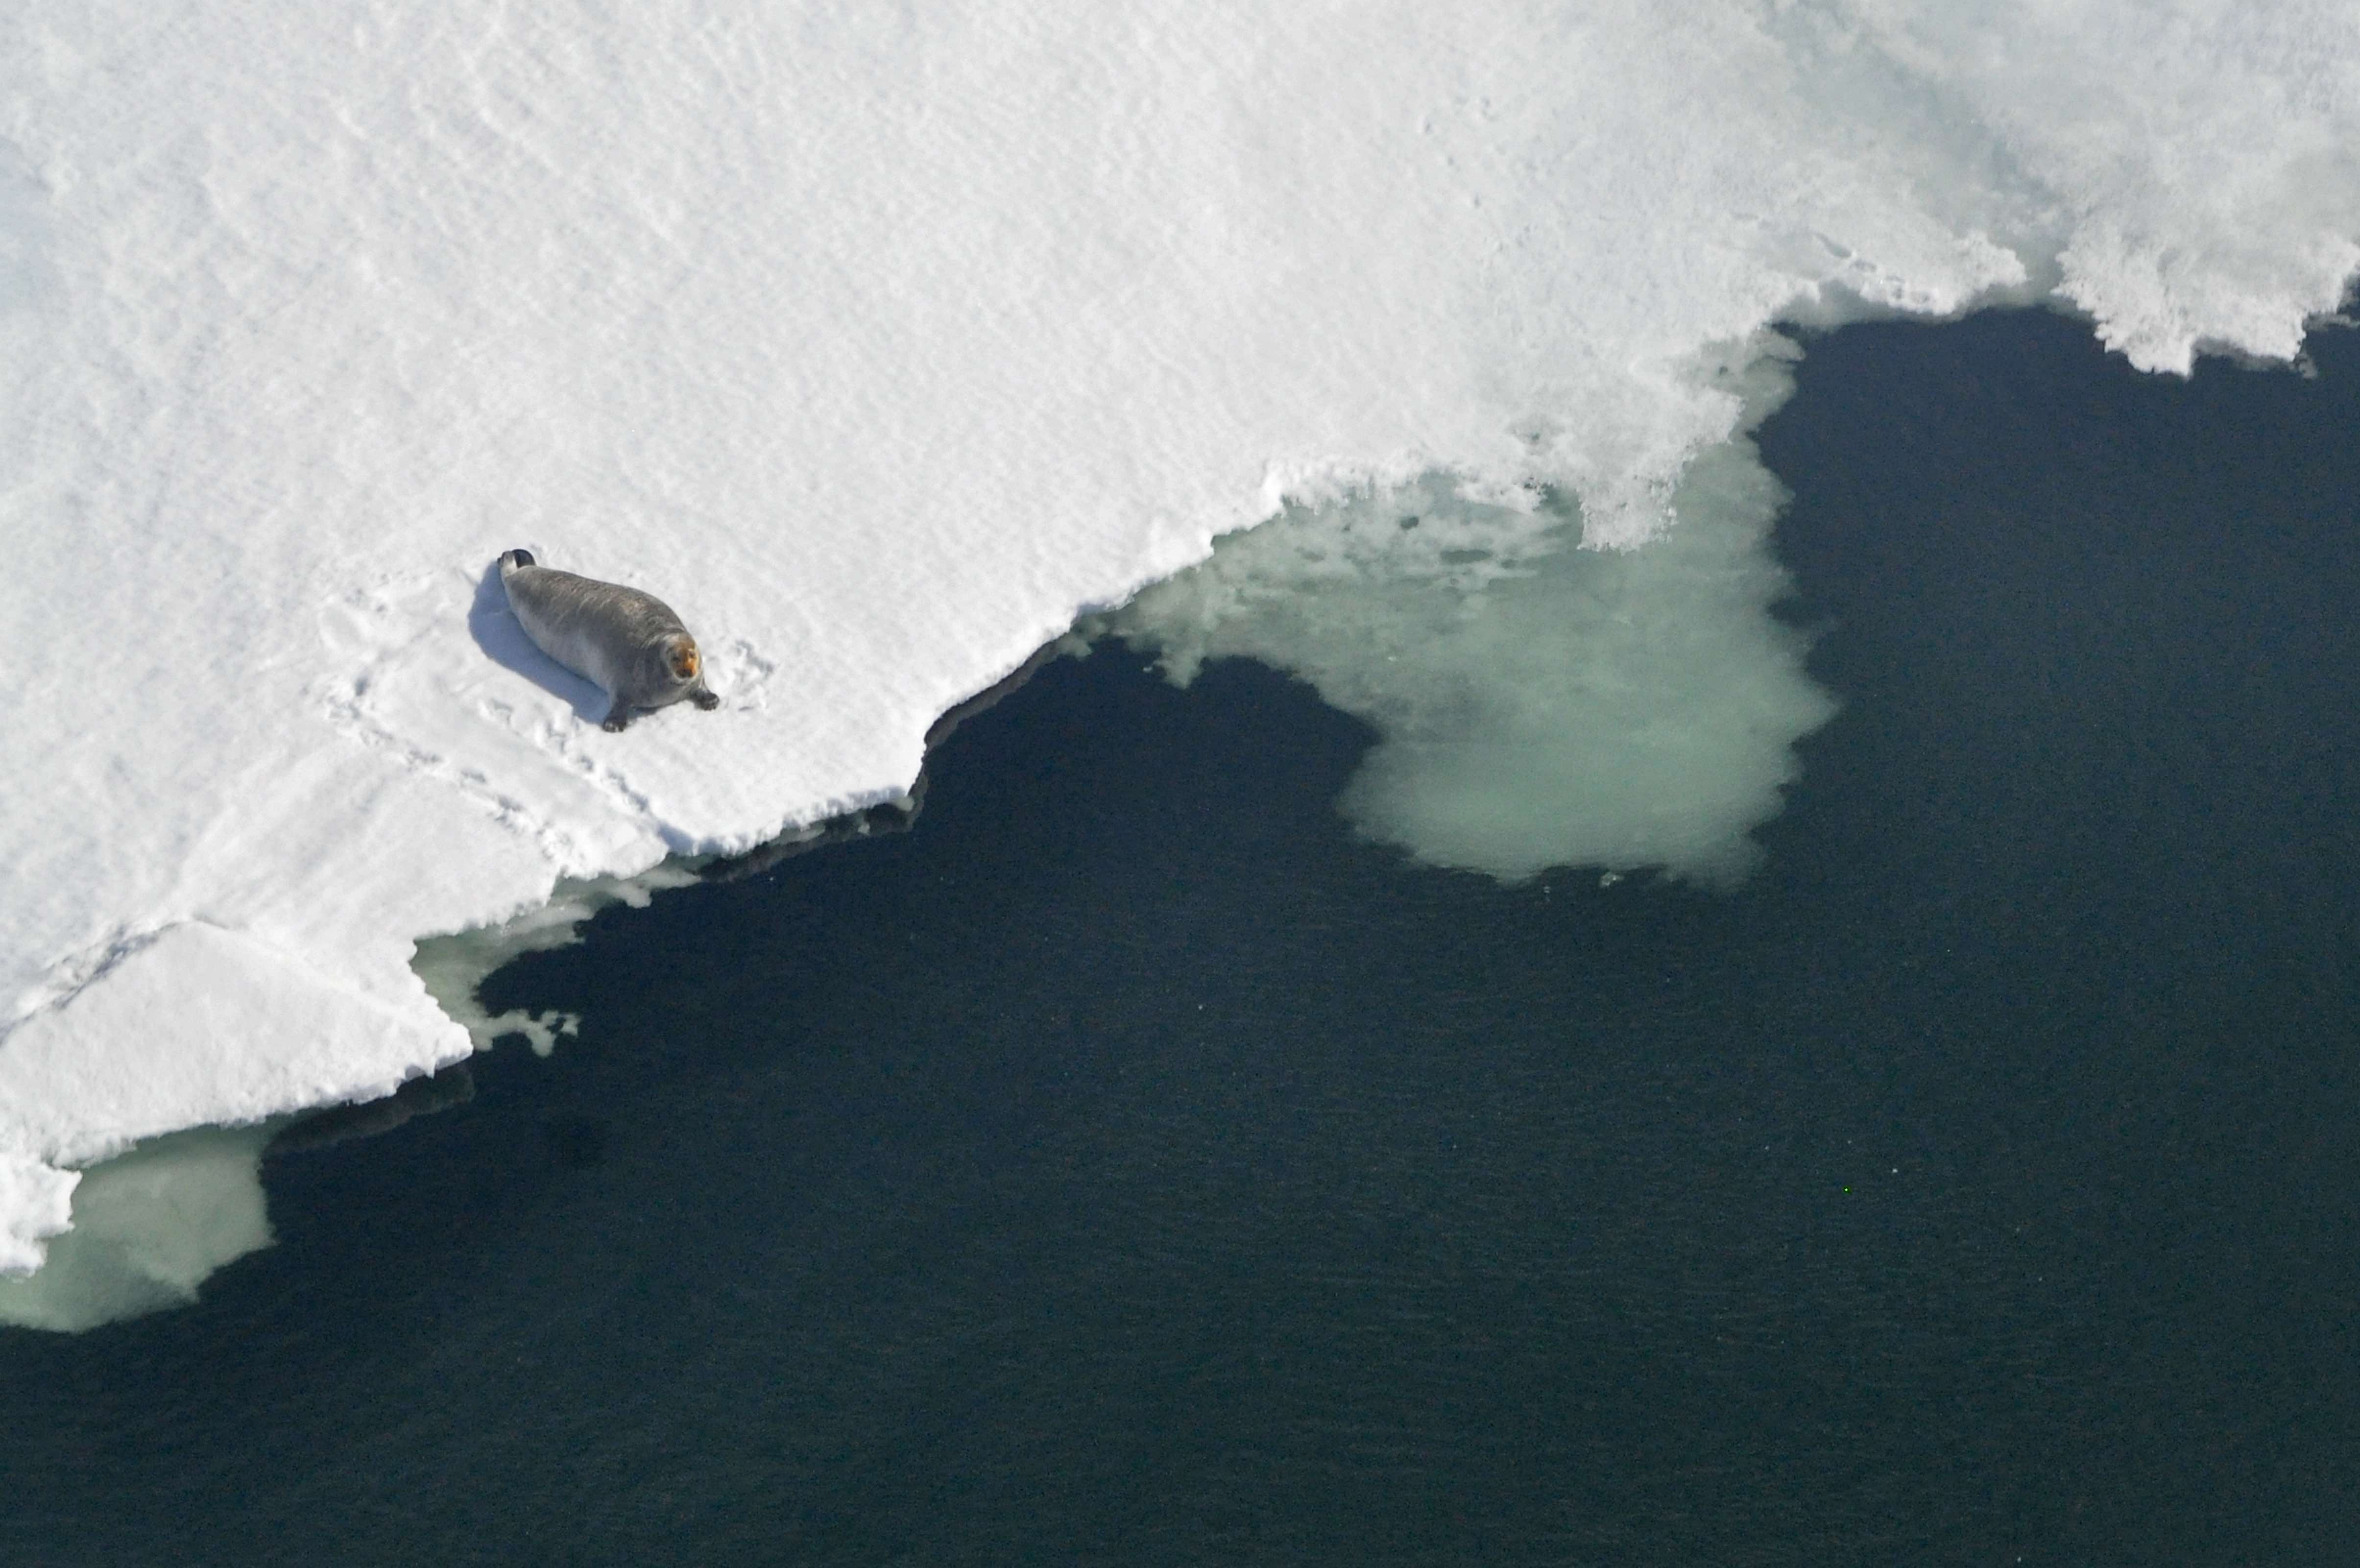 A seal rests on the edge of an ice floe in an aerial photograph.